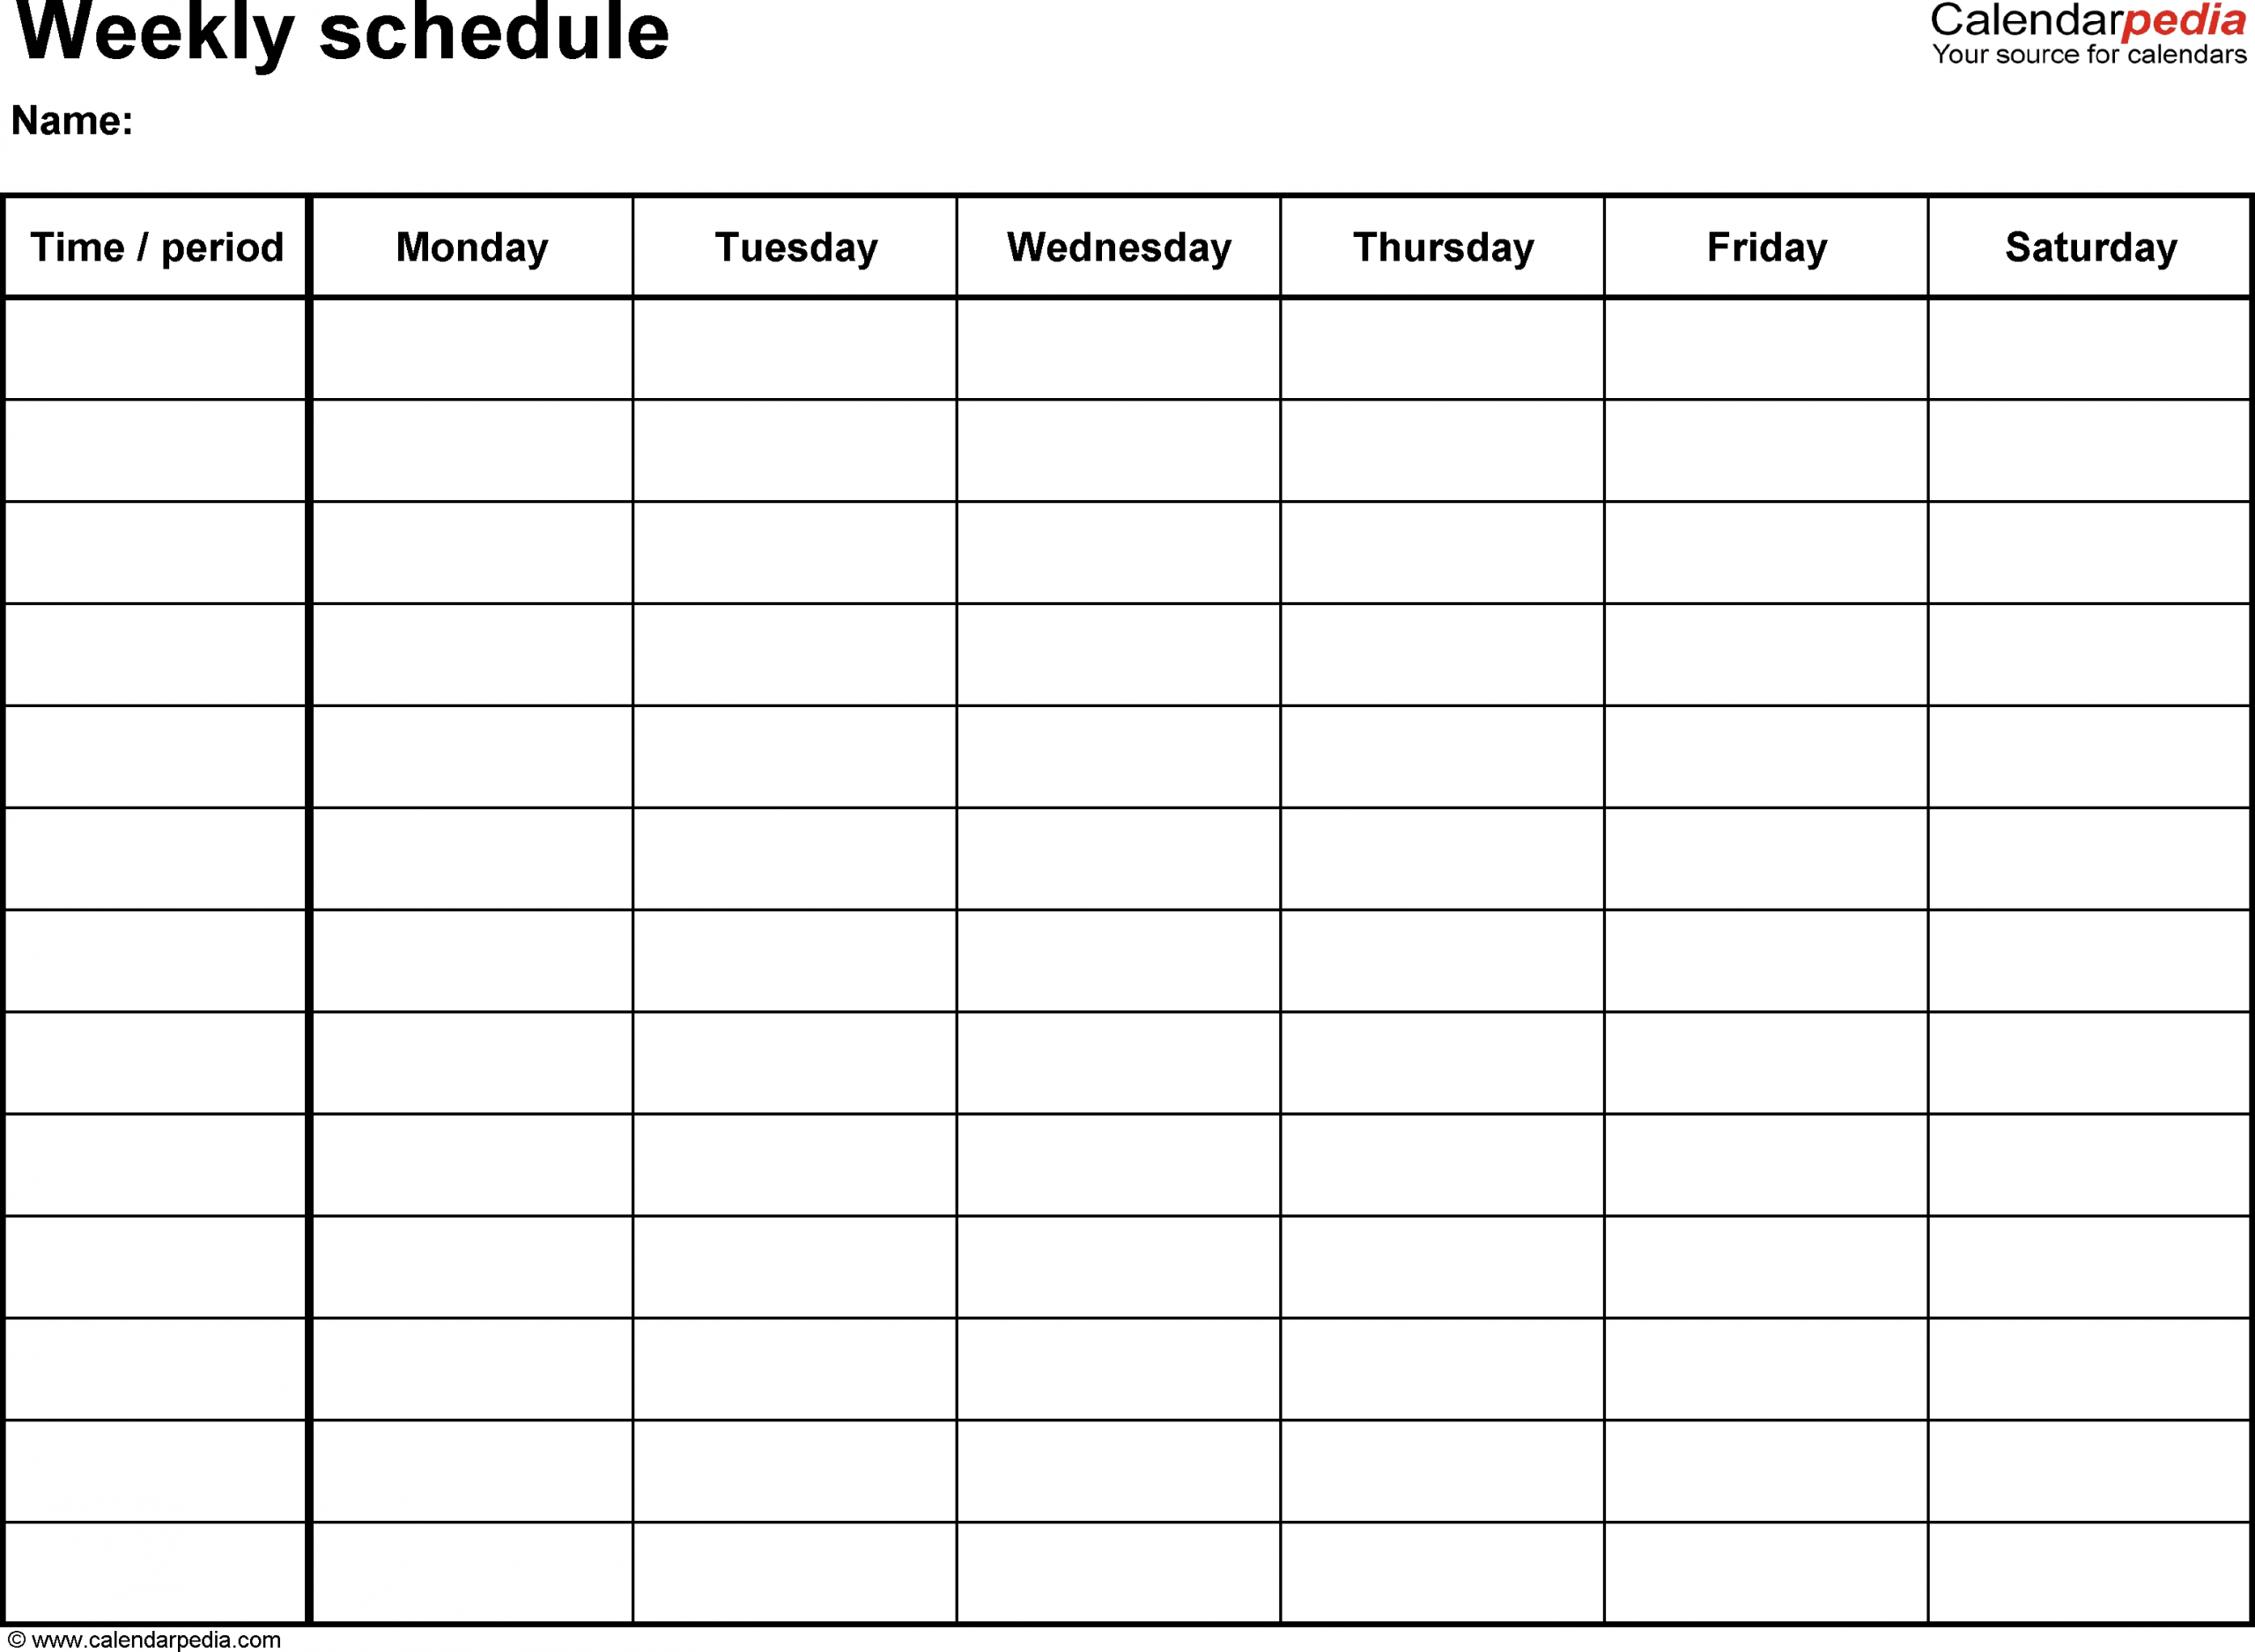 January 2019 – Template Calendar Design Weekly Schedule Template Monday Friday